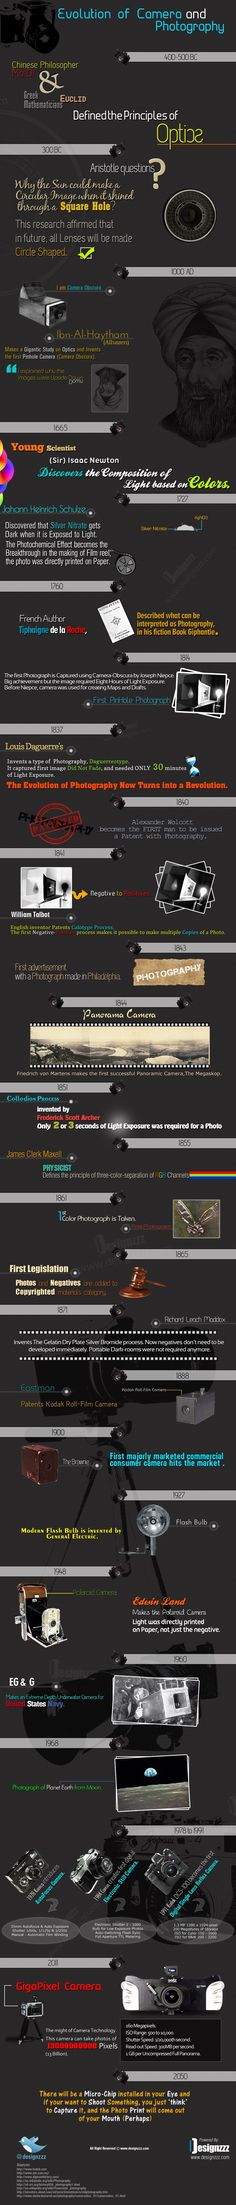 Evolution of camera and photography #infographic